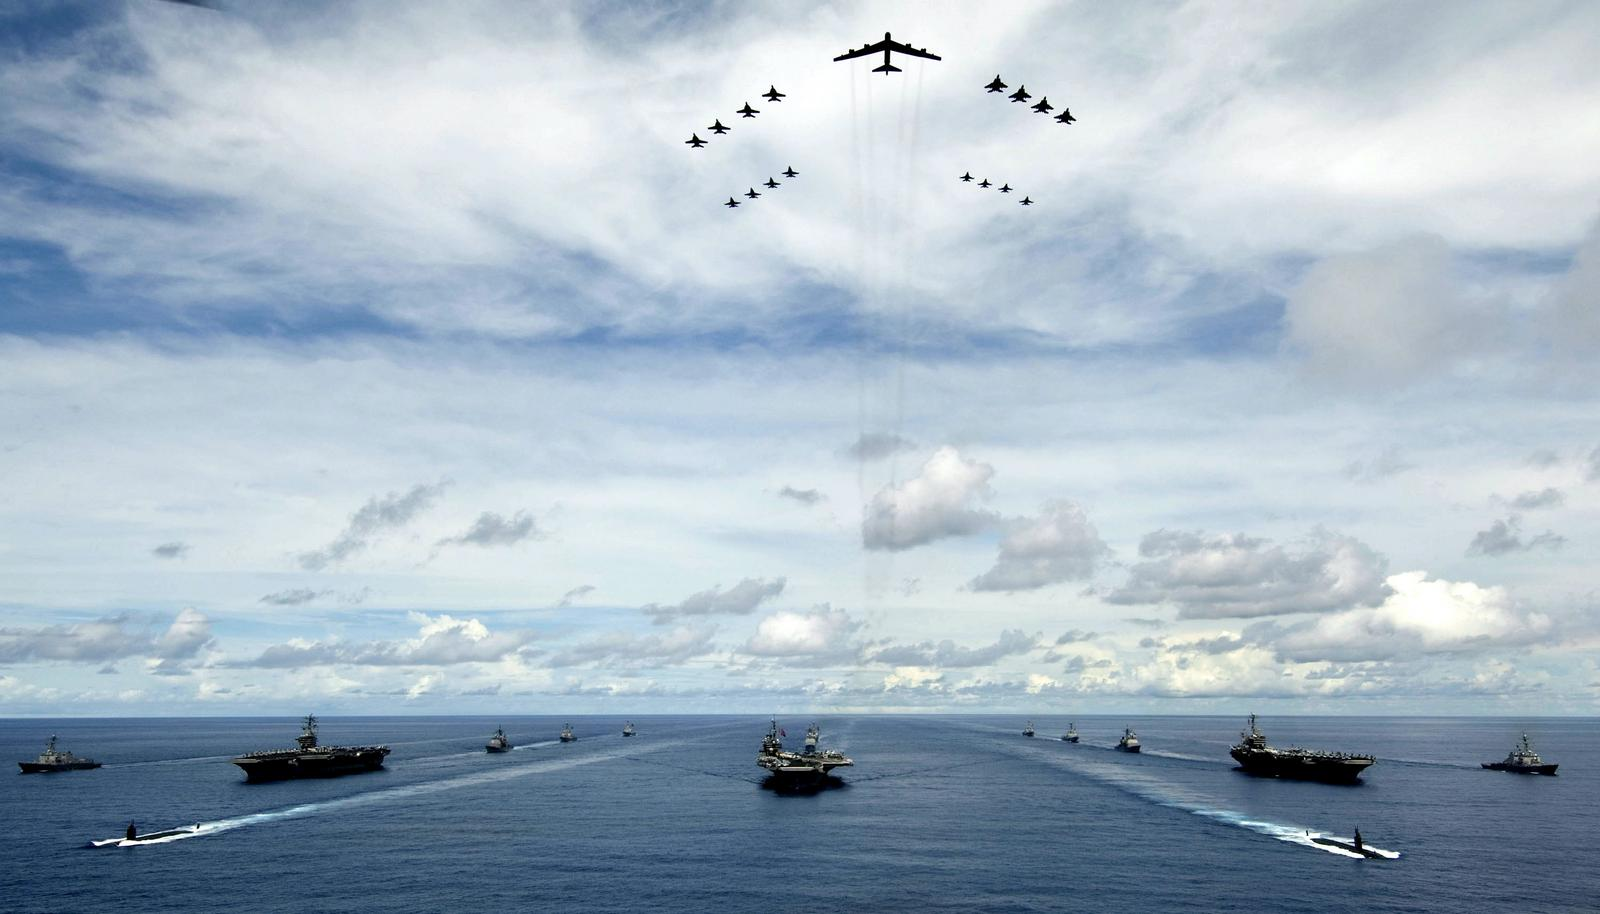 Aircraft Air Force Fighters And Bombers Navy Jets Desktop Wallpaper 1600x914